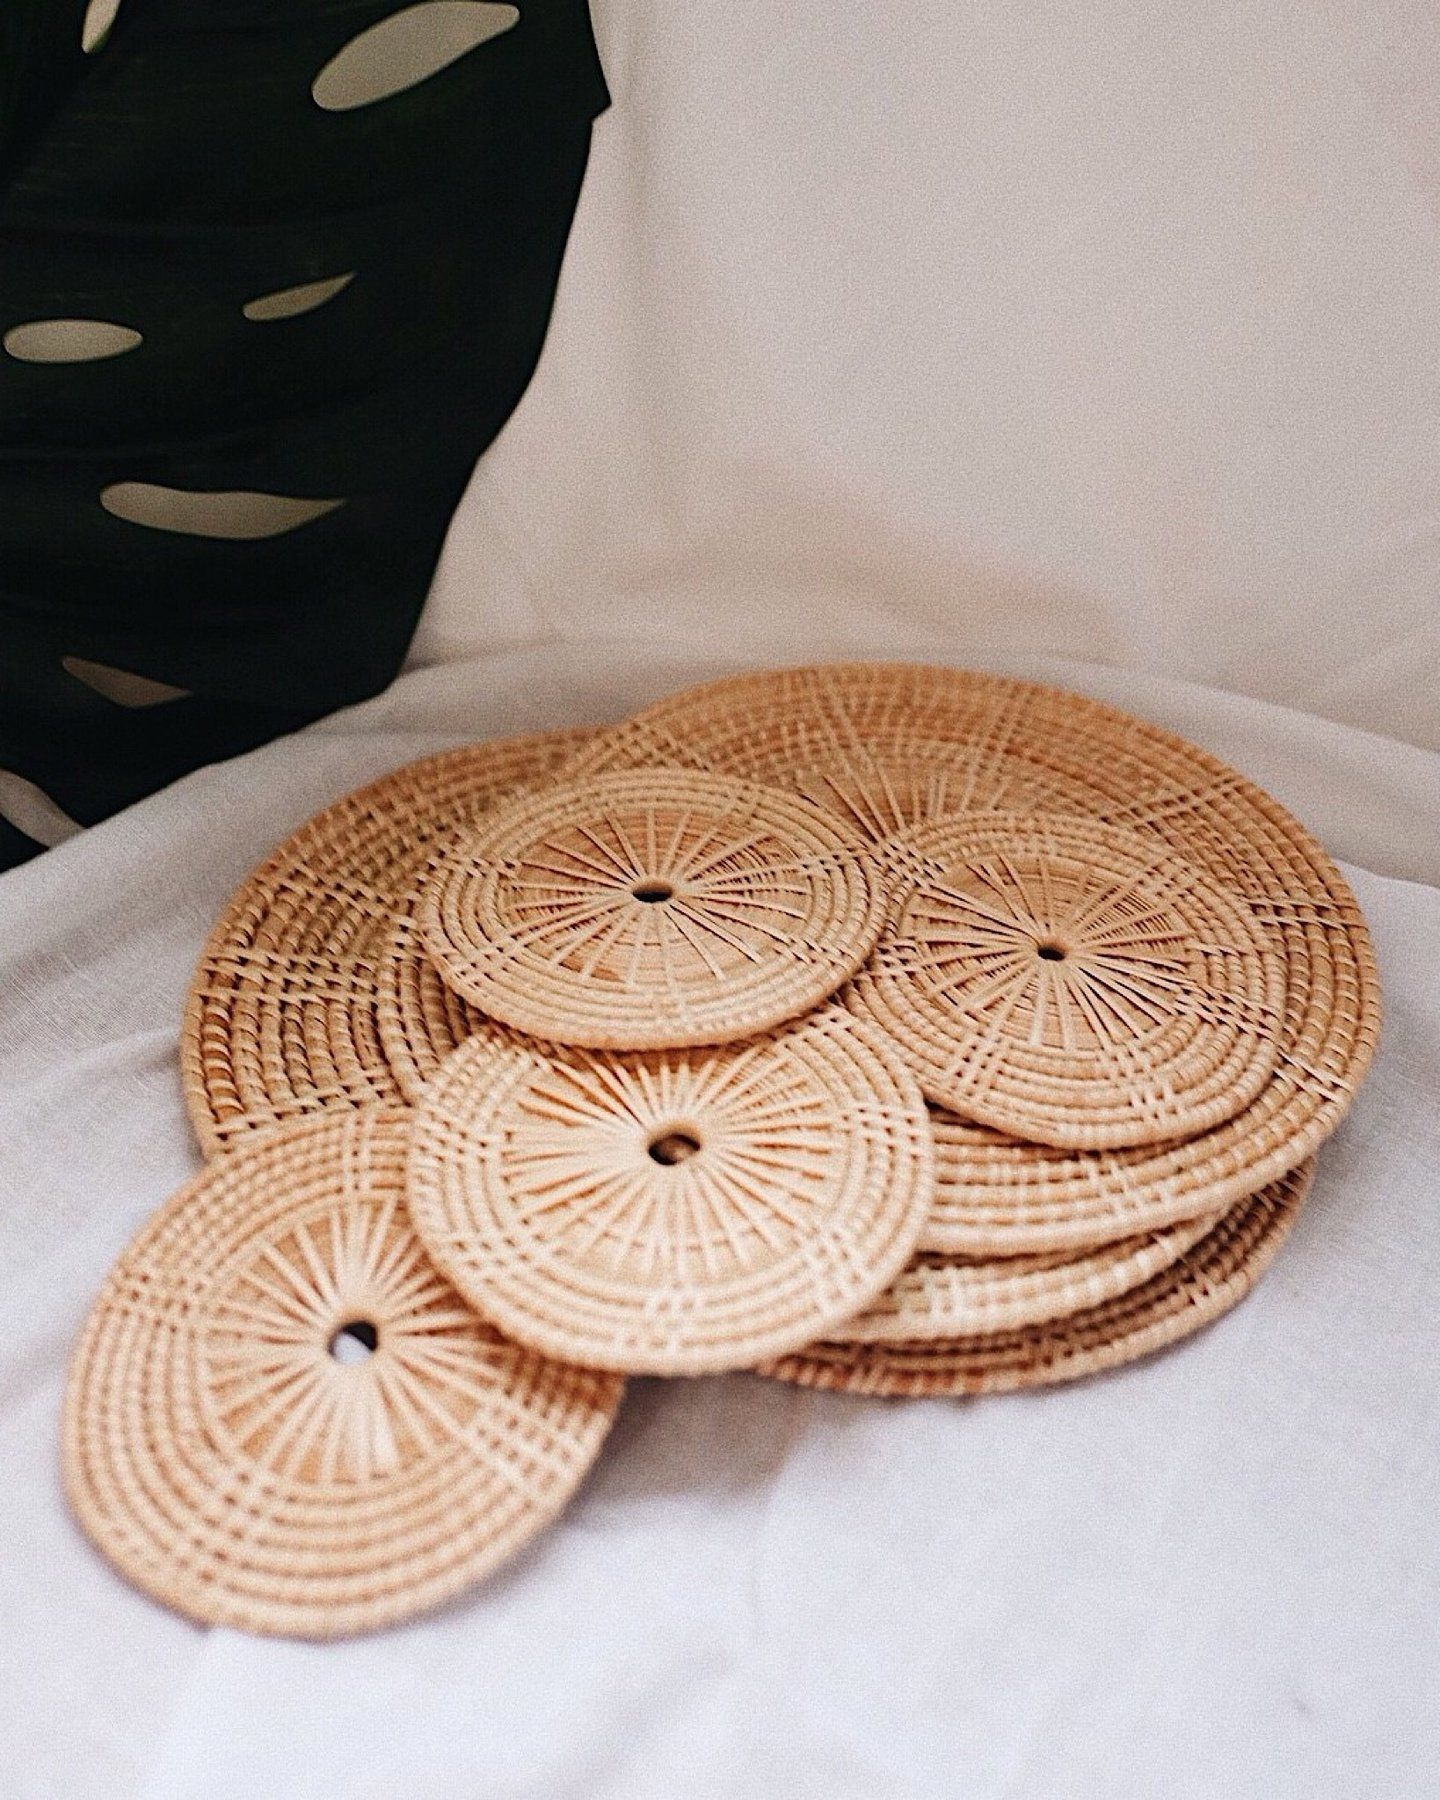 Ivy Placemat Coaster Table Set Of 4 Woven Woven Placemats Boho Style Room